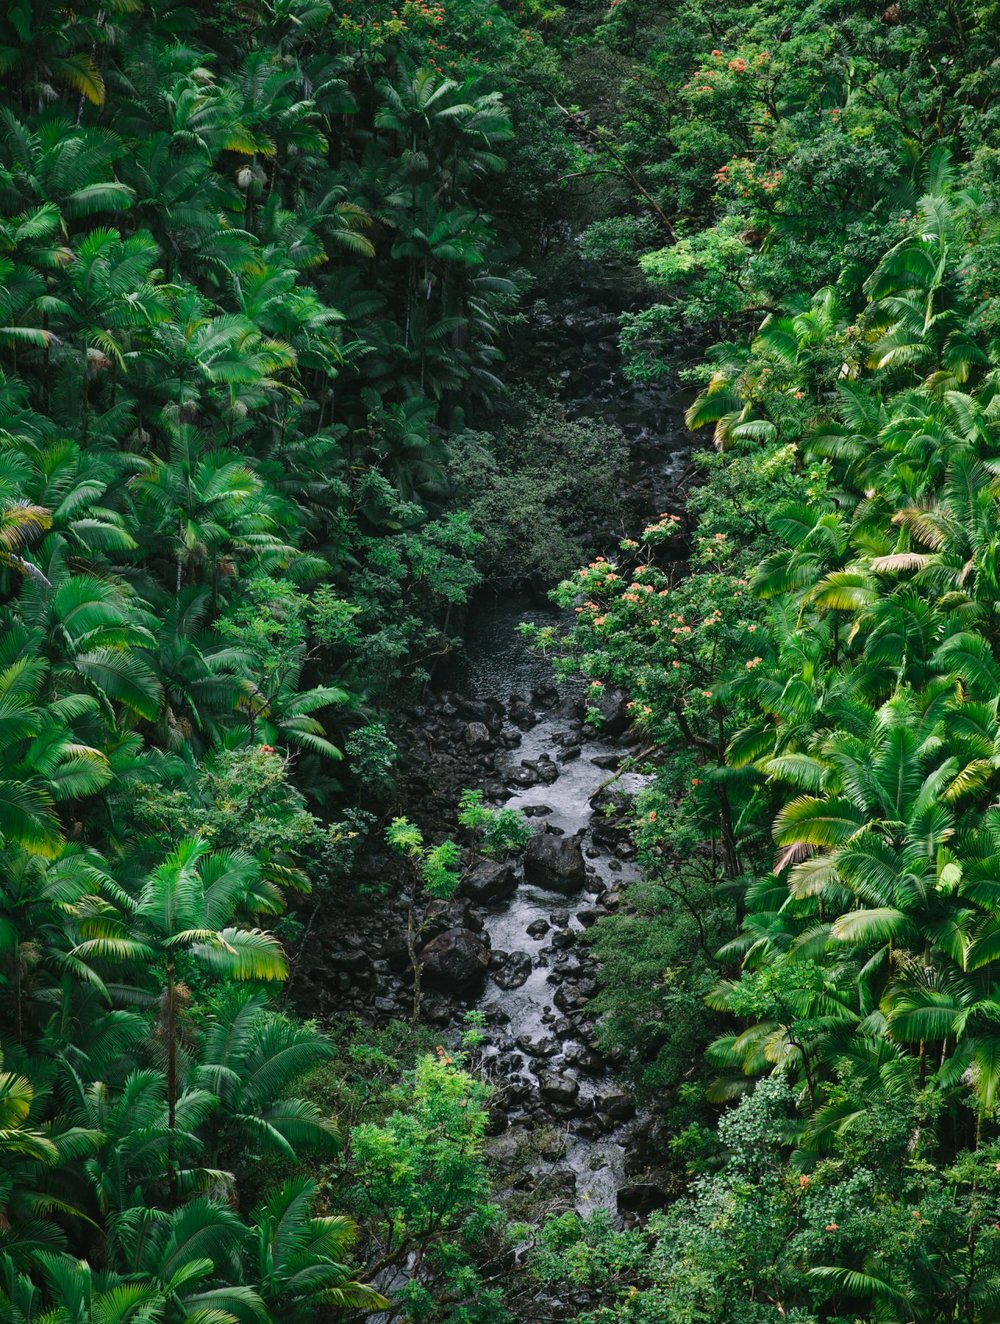 Hawaii-Big-Island-Travel-Guide-by-Eva-Kosmas-Flores-42-1360x1800.jpg